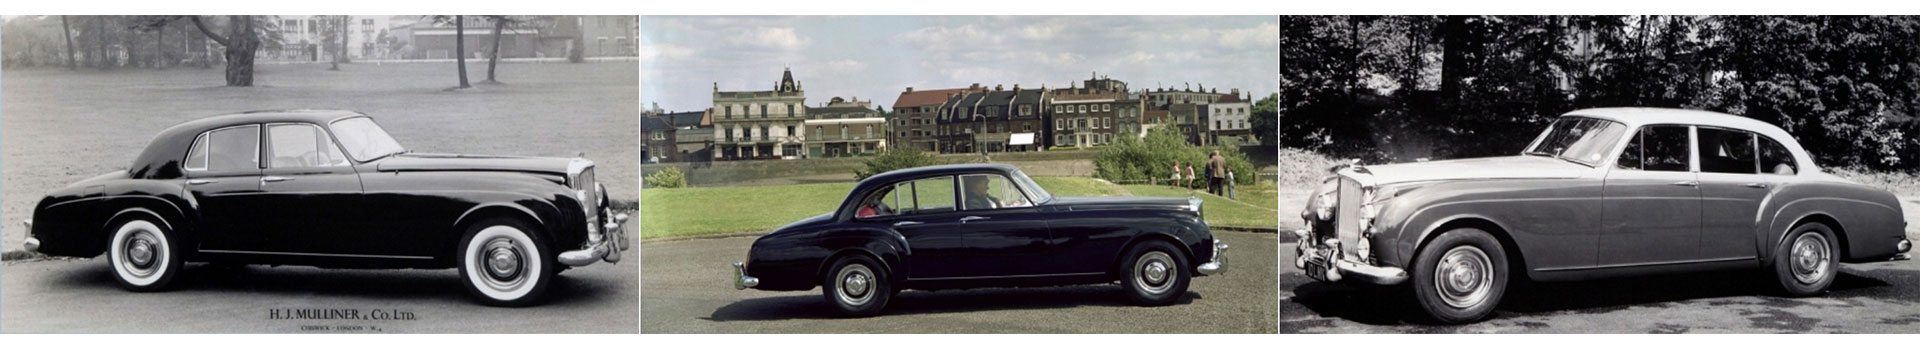 The Bentley S1 Continental Flying Spur - Bentley Legacy Cars